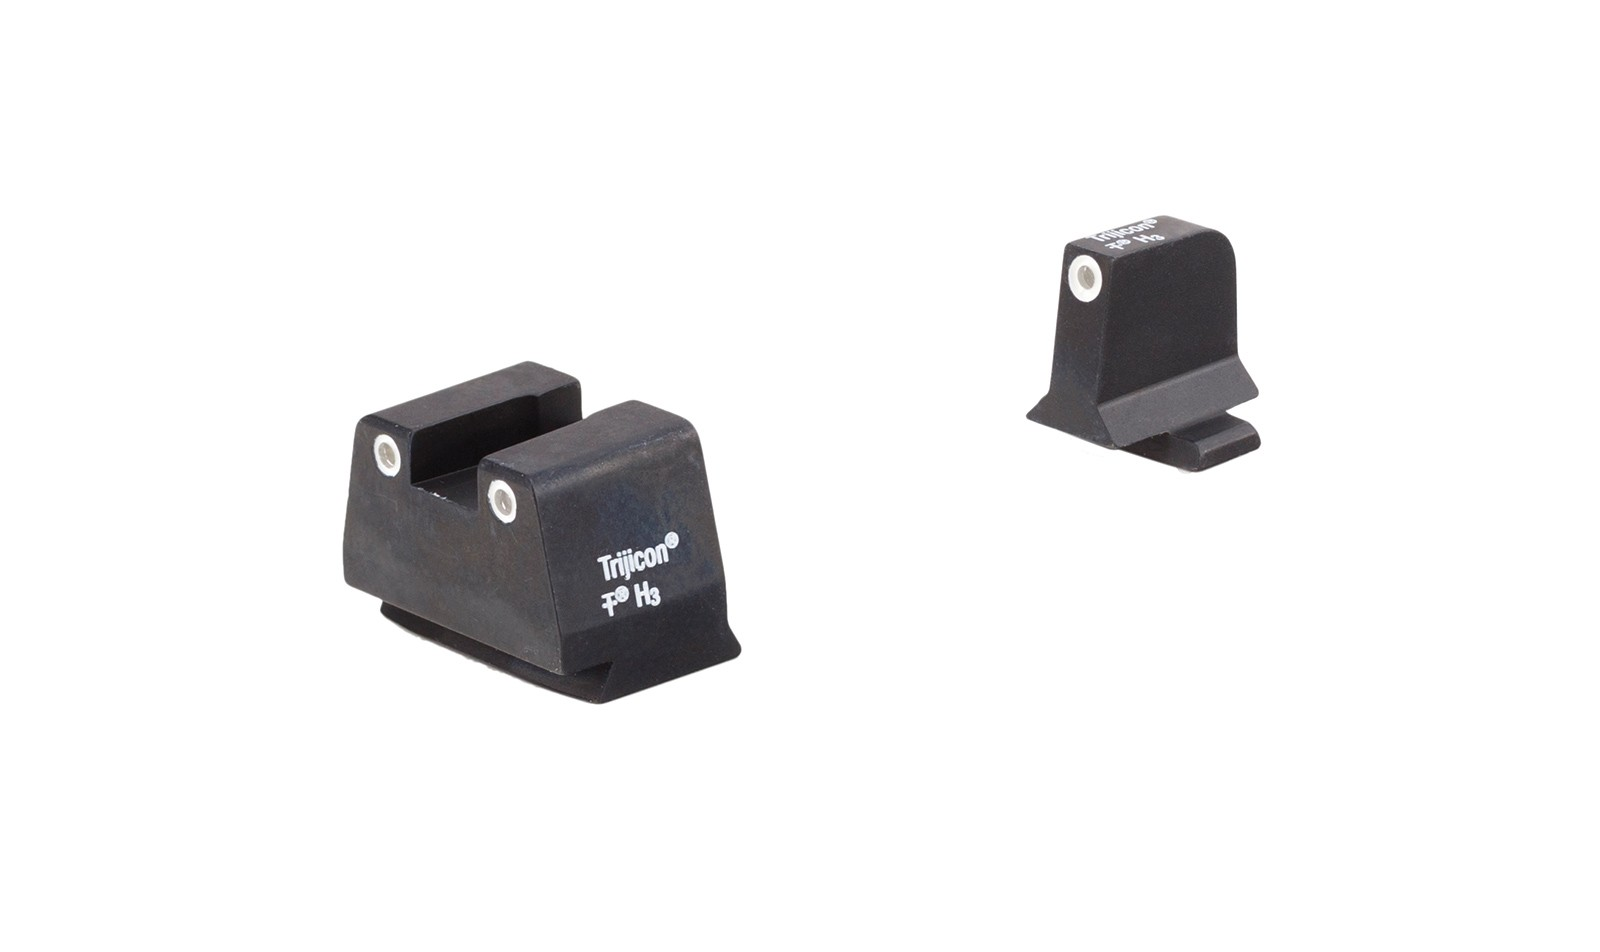 Trijicon Bright & Tough™ Suppressor Night Sights - FNS-9, FNX-9, FNP-9